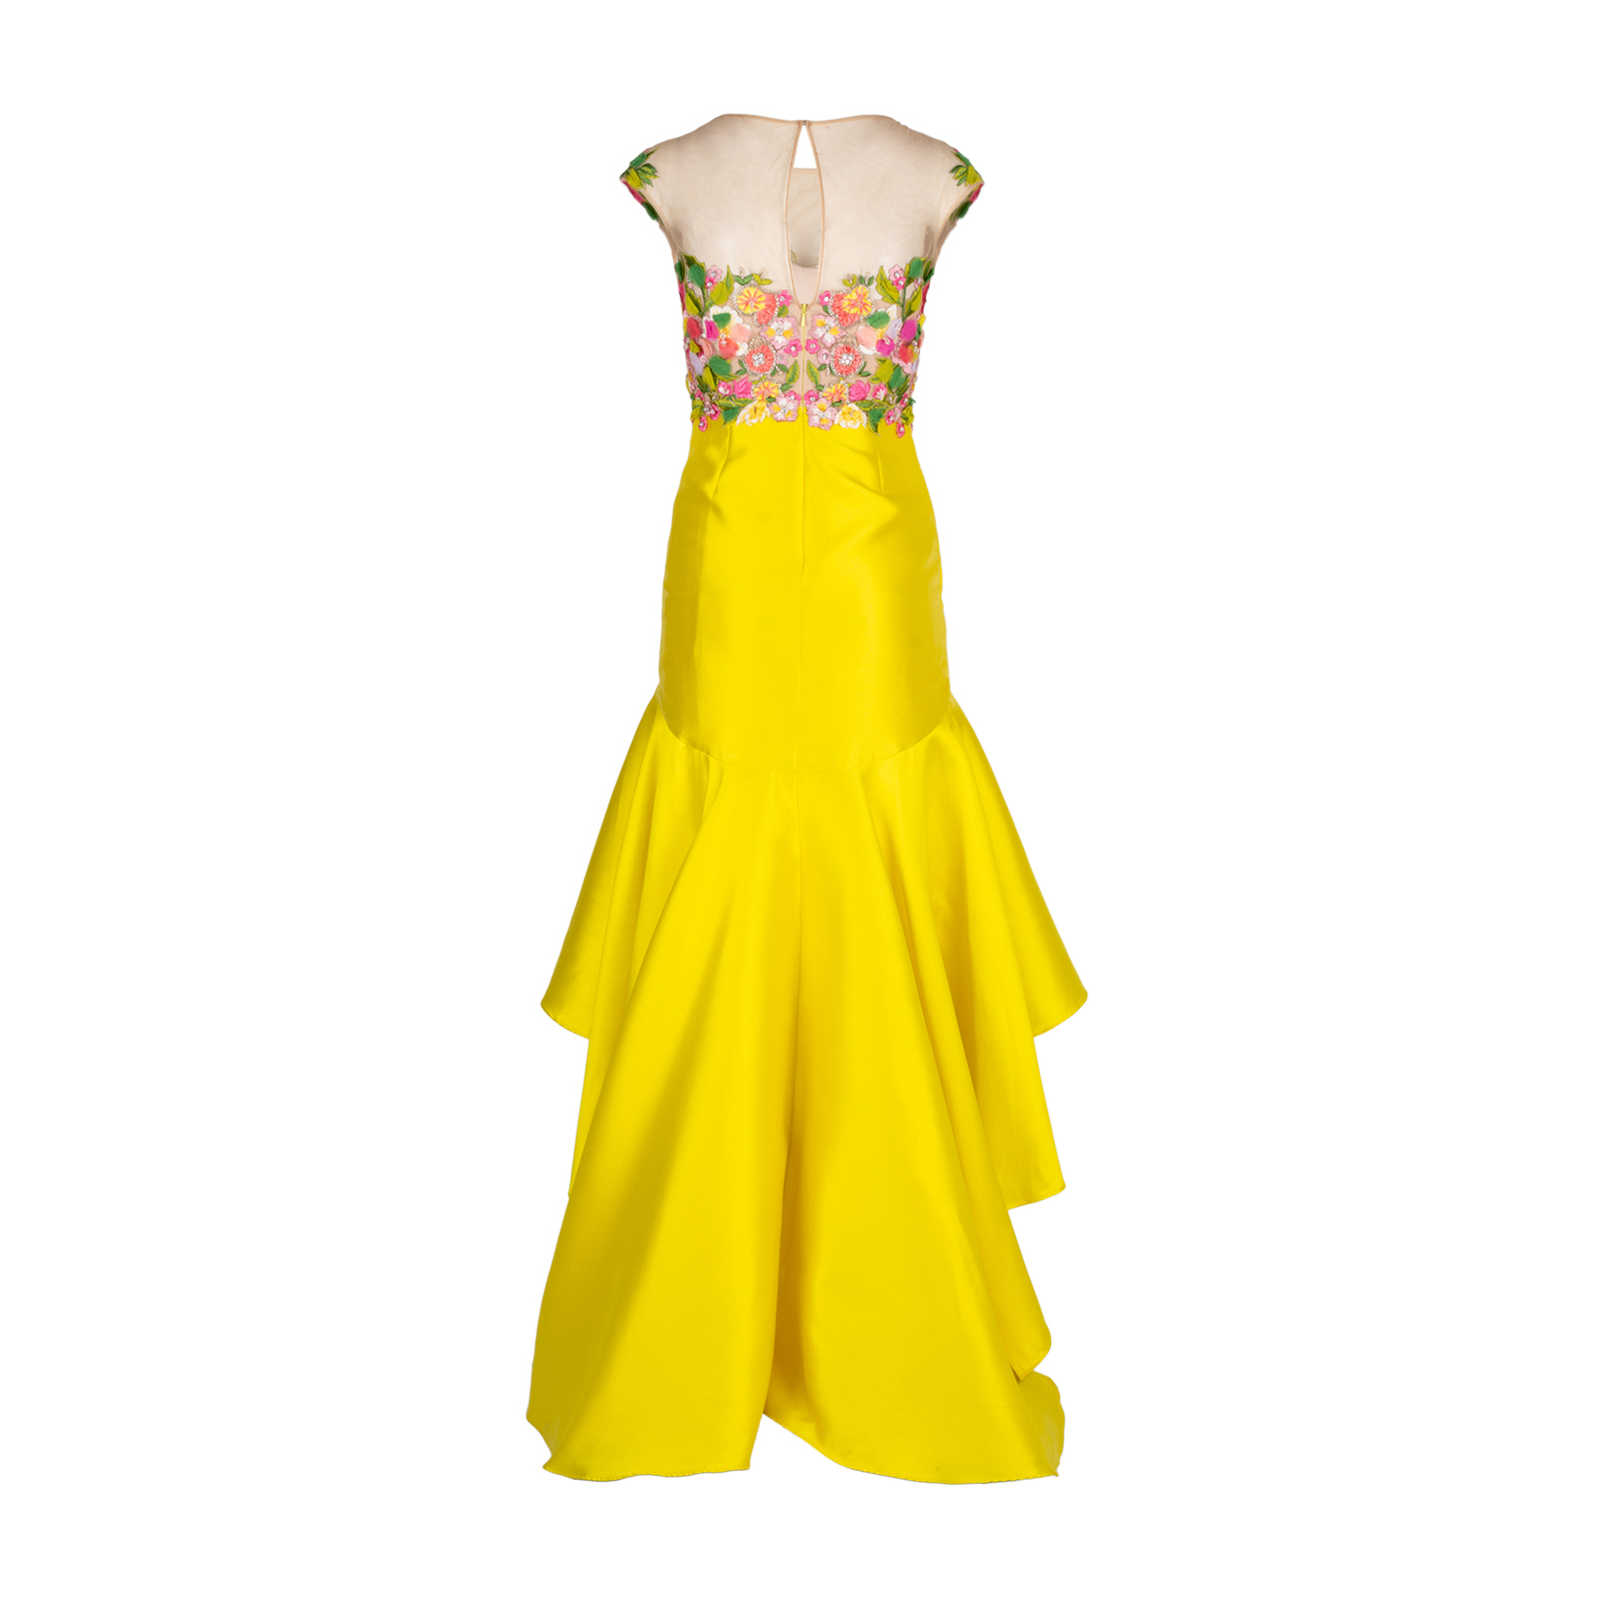 a237be0d590 ... Authentic Second Hand Marchesa Notte Embroidered Mikado High-Low Dress  (PSS-515- ...